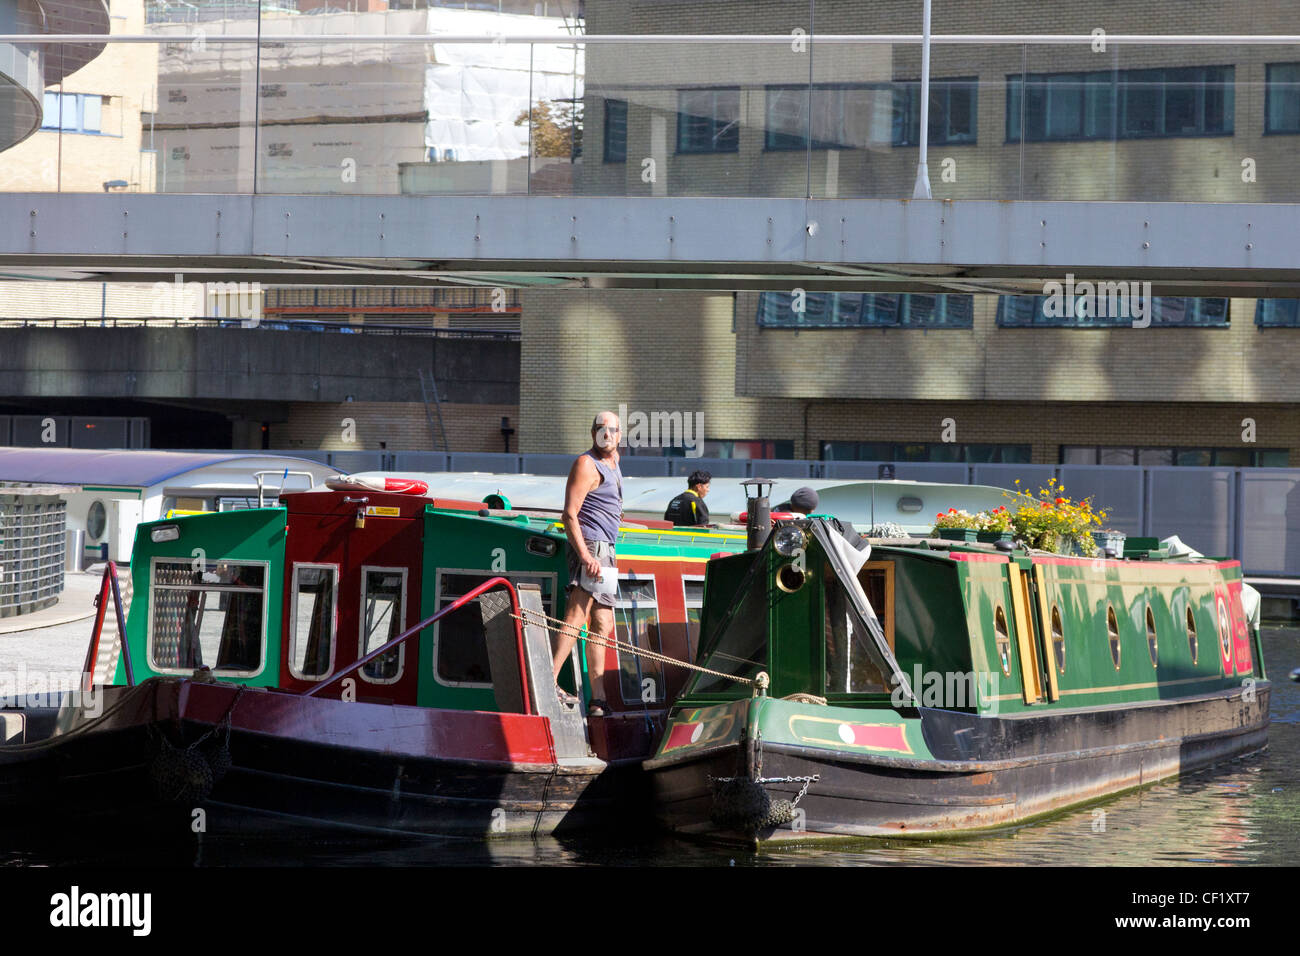 Narrowboats moored in the Paddington Arm of the Grand Union Canal - Stock Image